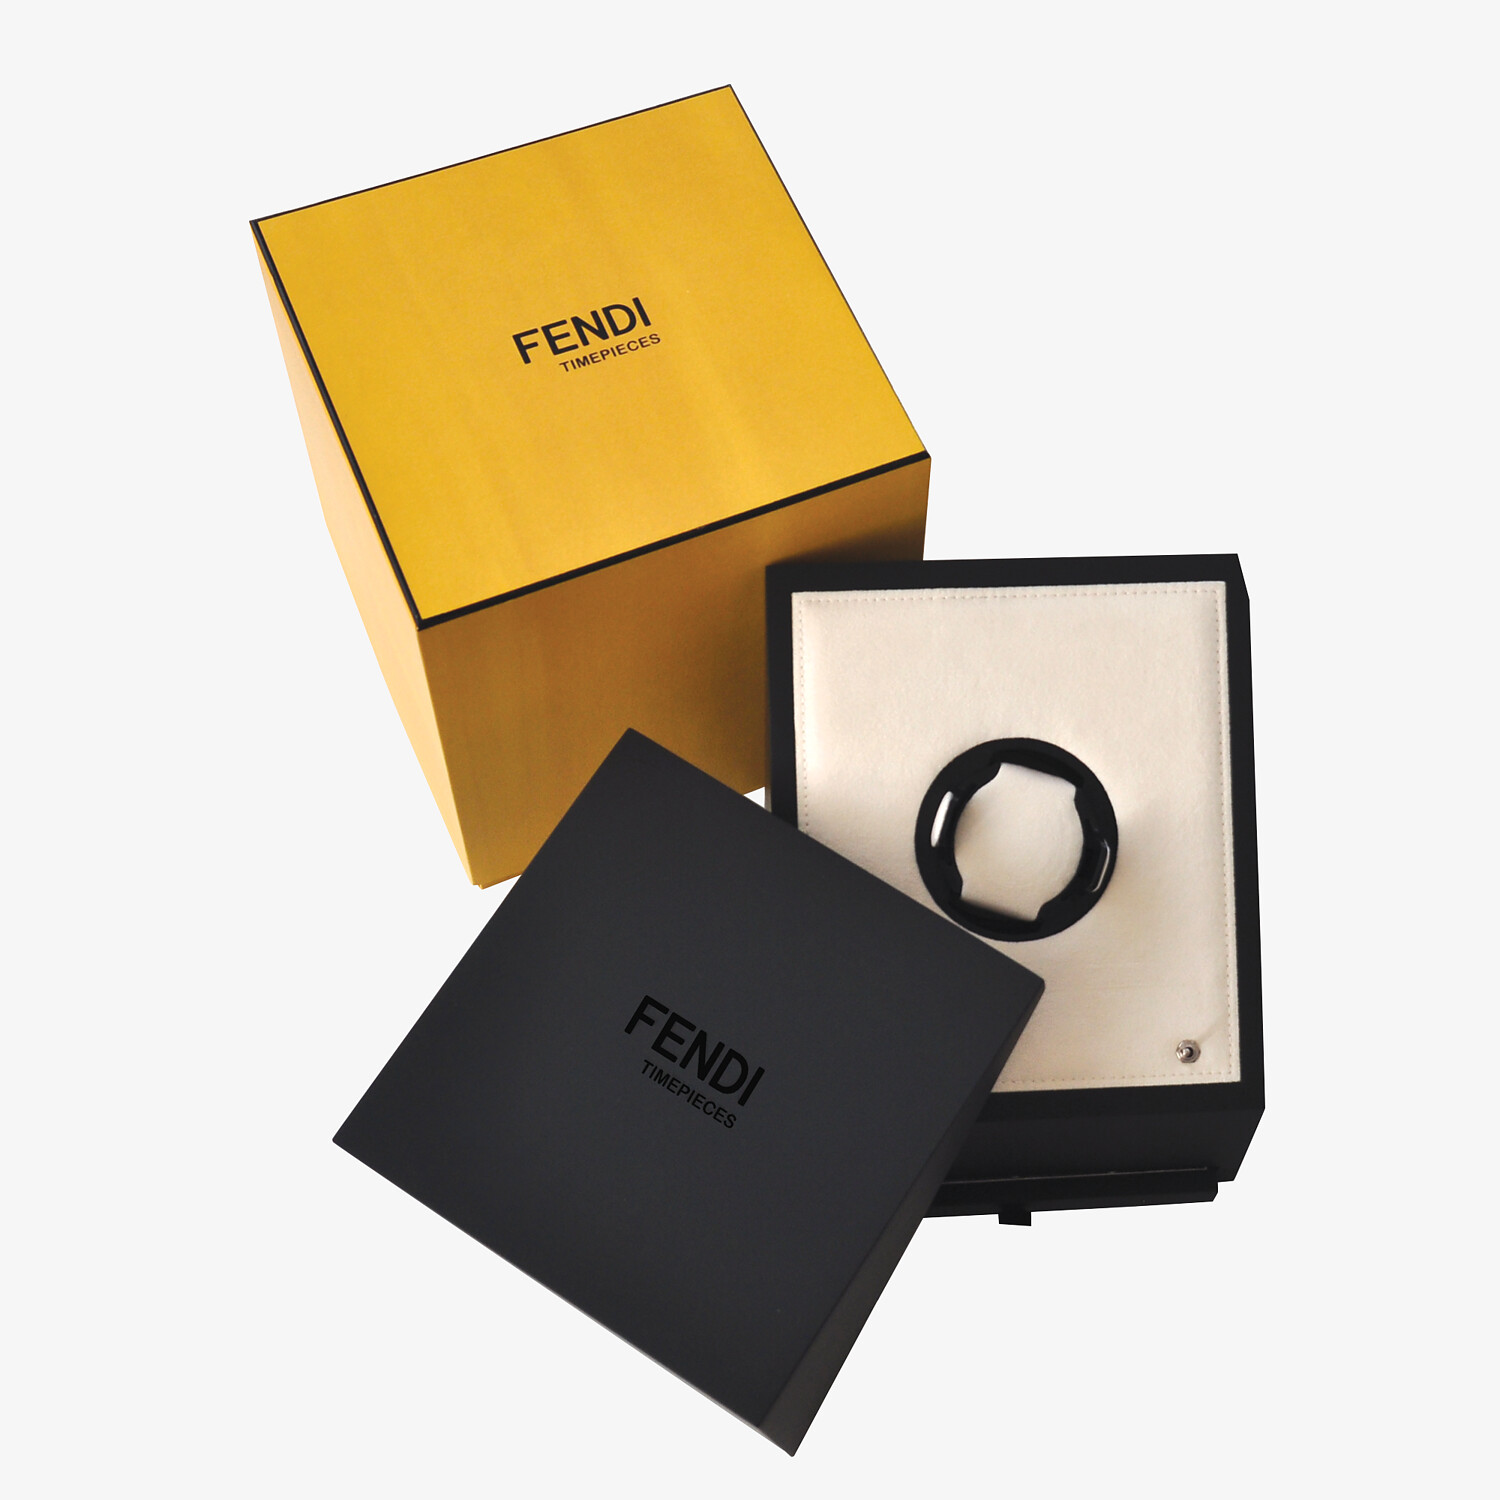 FENDI SELLERIA - 42mm (1.7inch) – Automatic watch with interchangeable bracelet - view 5 detail